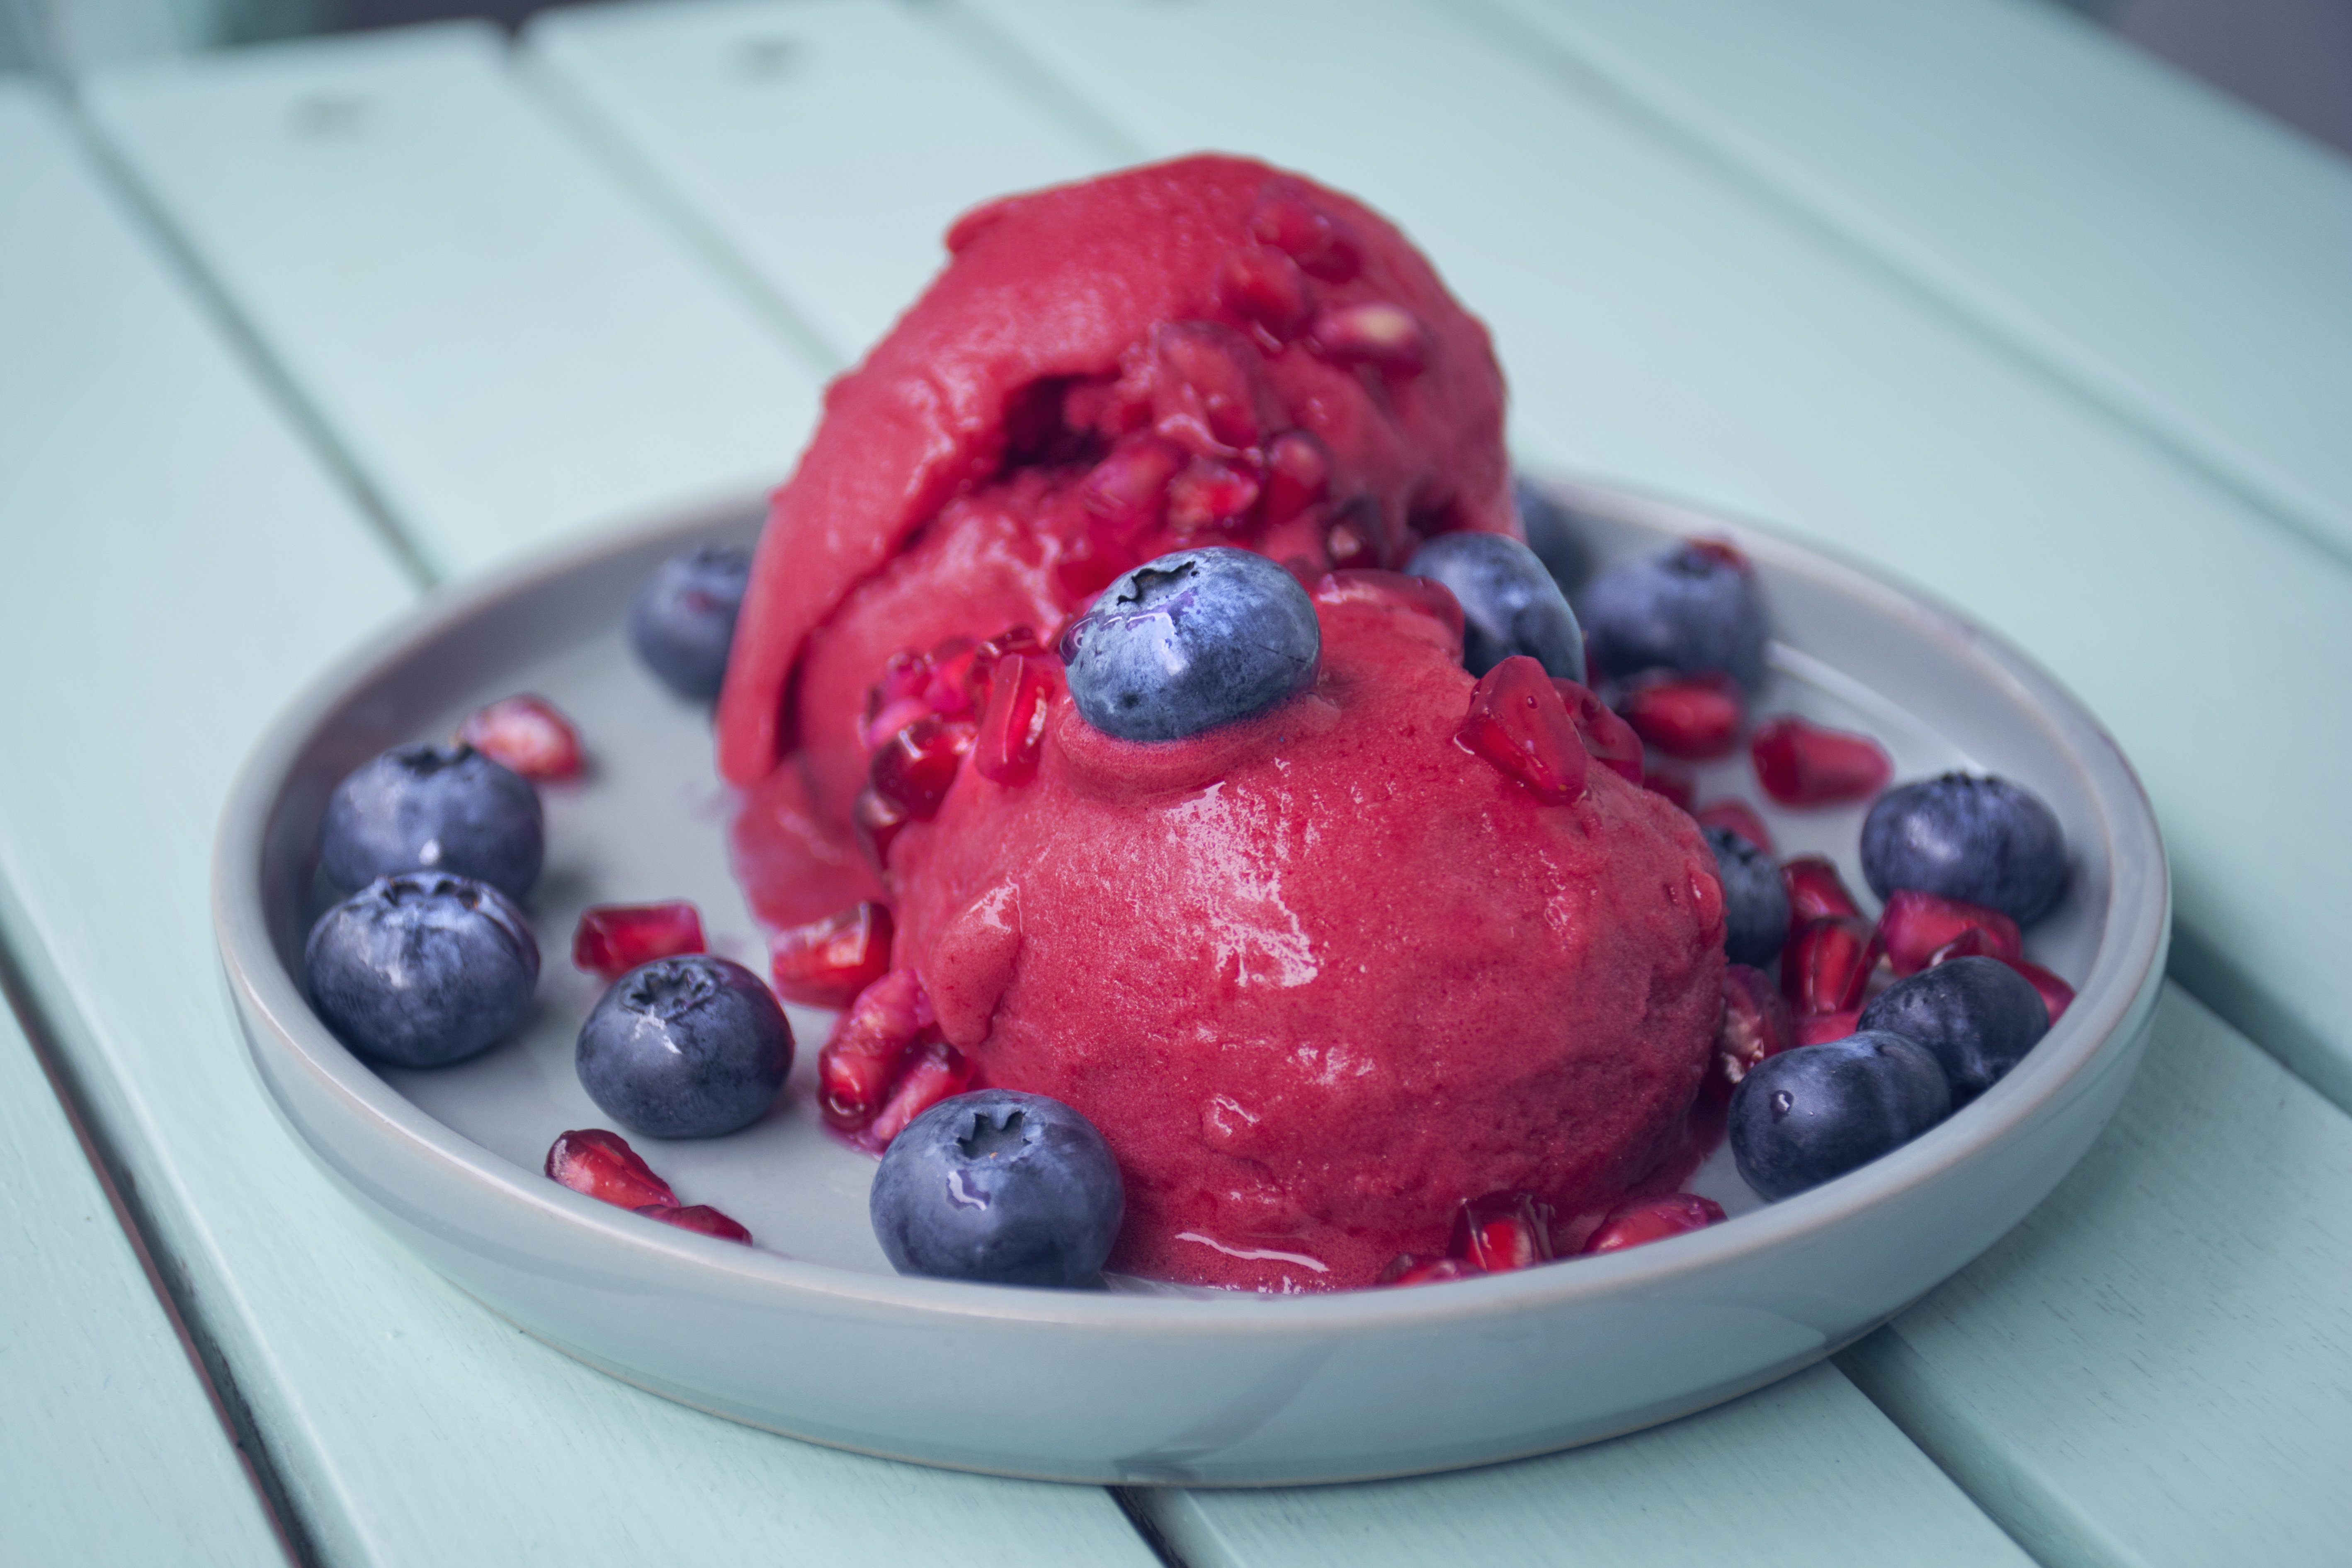 Fancy some Pomegranate Sorbet?